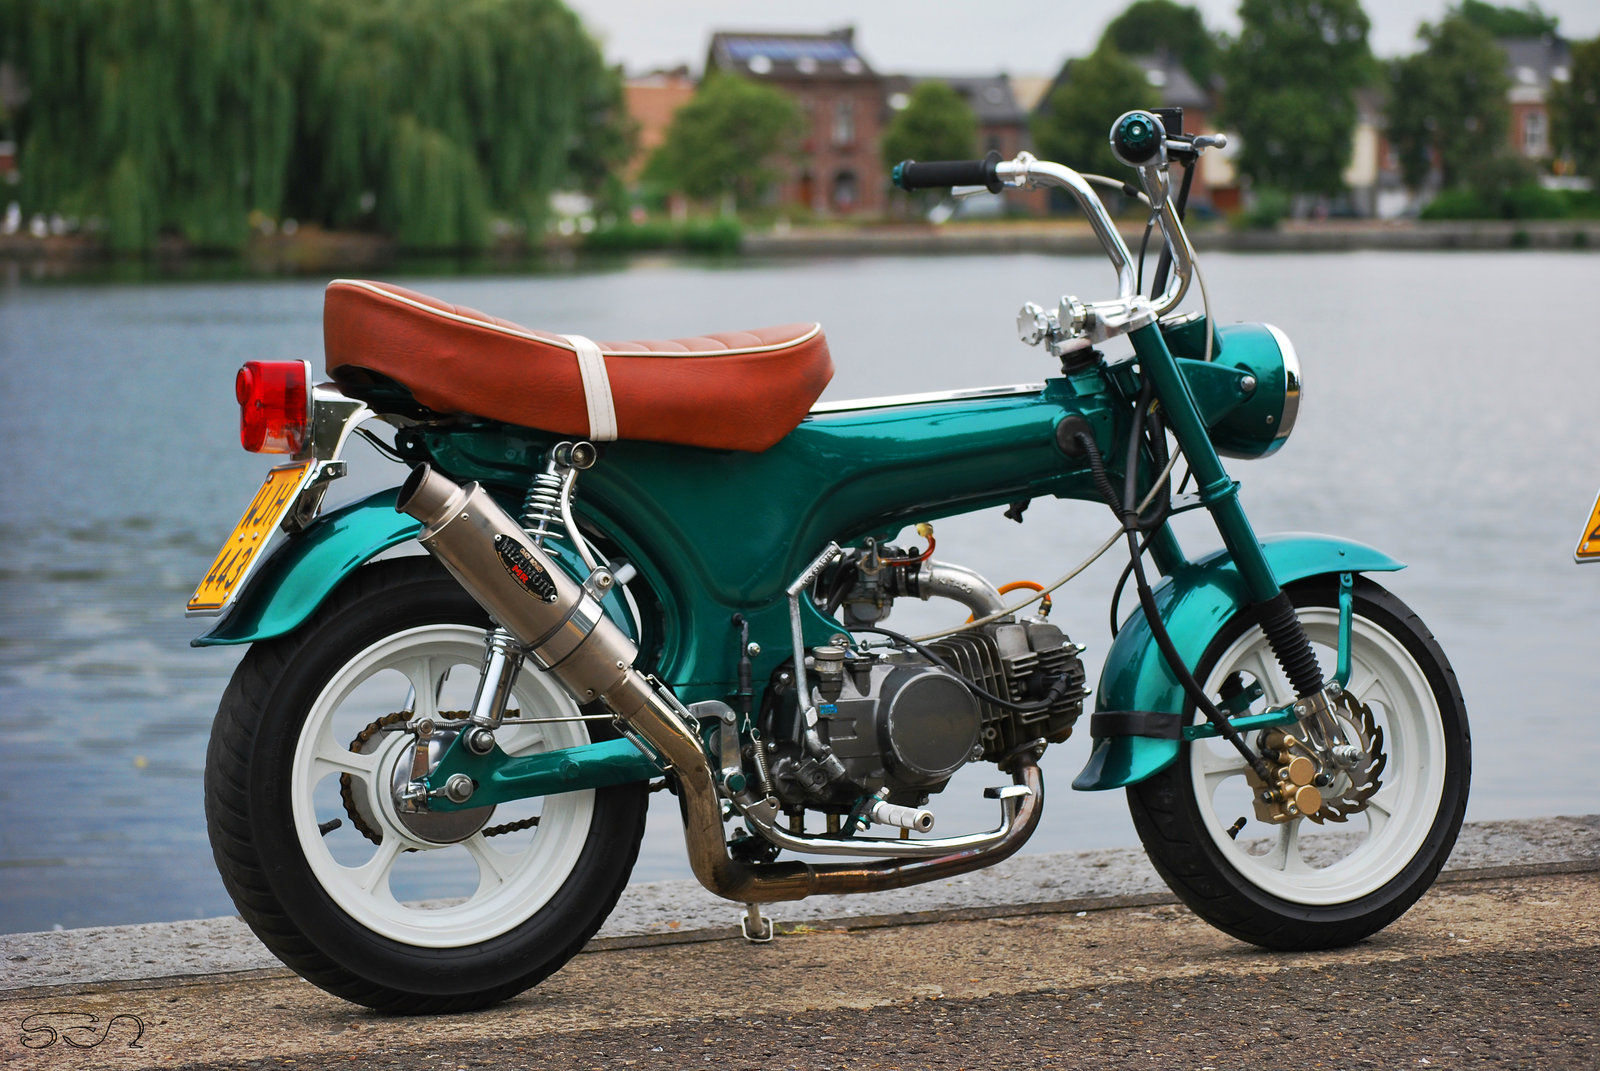 Honda Dax Photo And Video Review. Comments